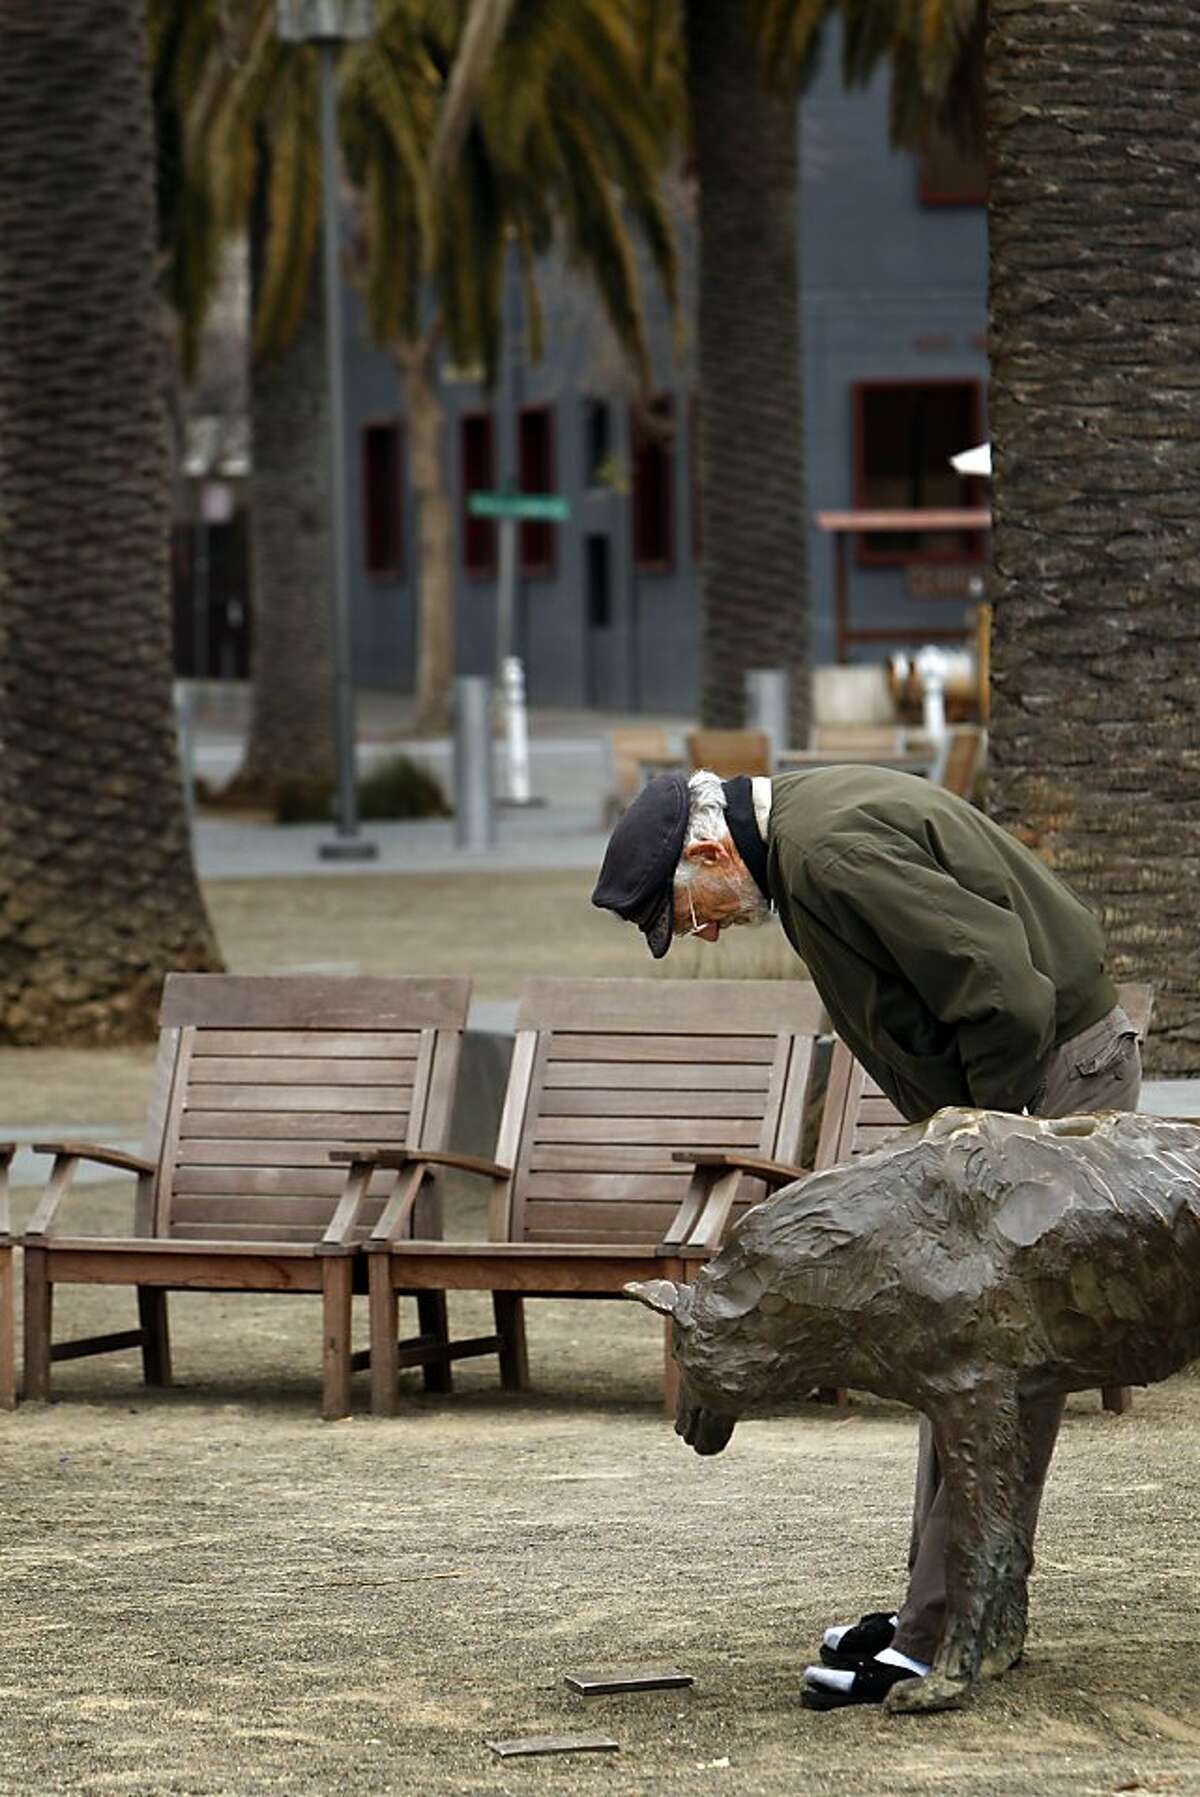 Richard Keup of Livermore, looks at a bronze paw print next to the wolf sculpture in Palm Plaza in Jack London Square in Oakland, Calif., on Monday, February 18, 2013. The space holds several monuments to Jack London, including his cabin and Heinold's First And Last Chance Saloon, where London would spend time when he lived in Oakland.